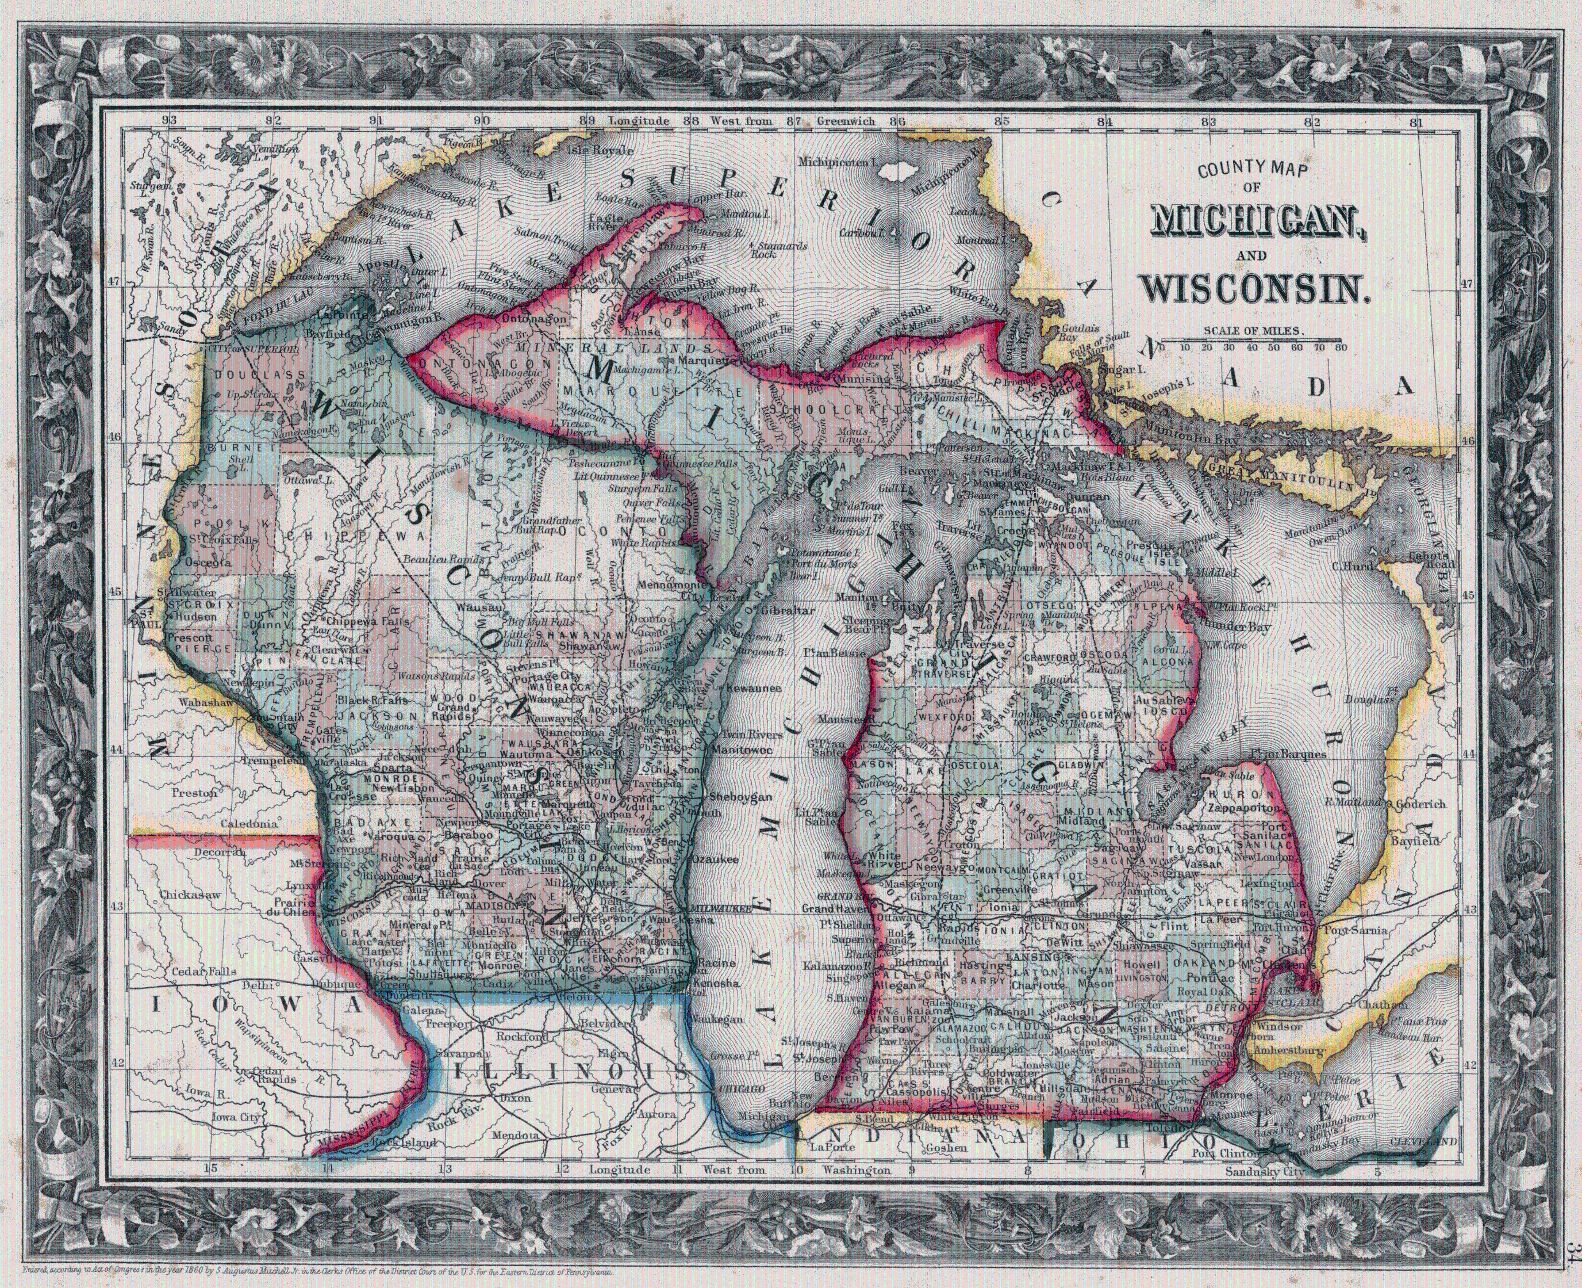 Map Antique County Map of Michigan and